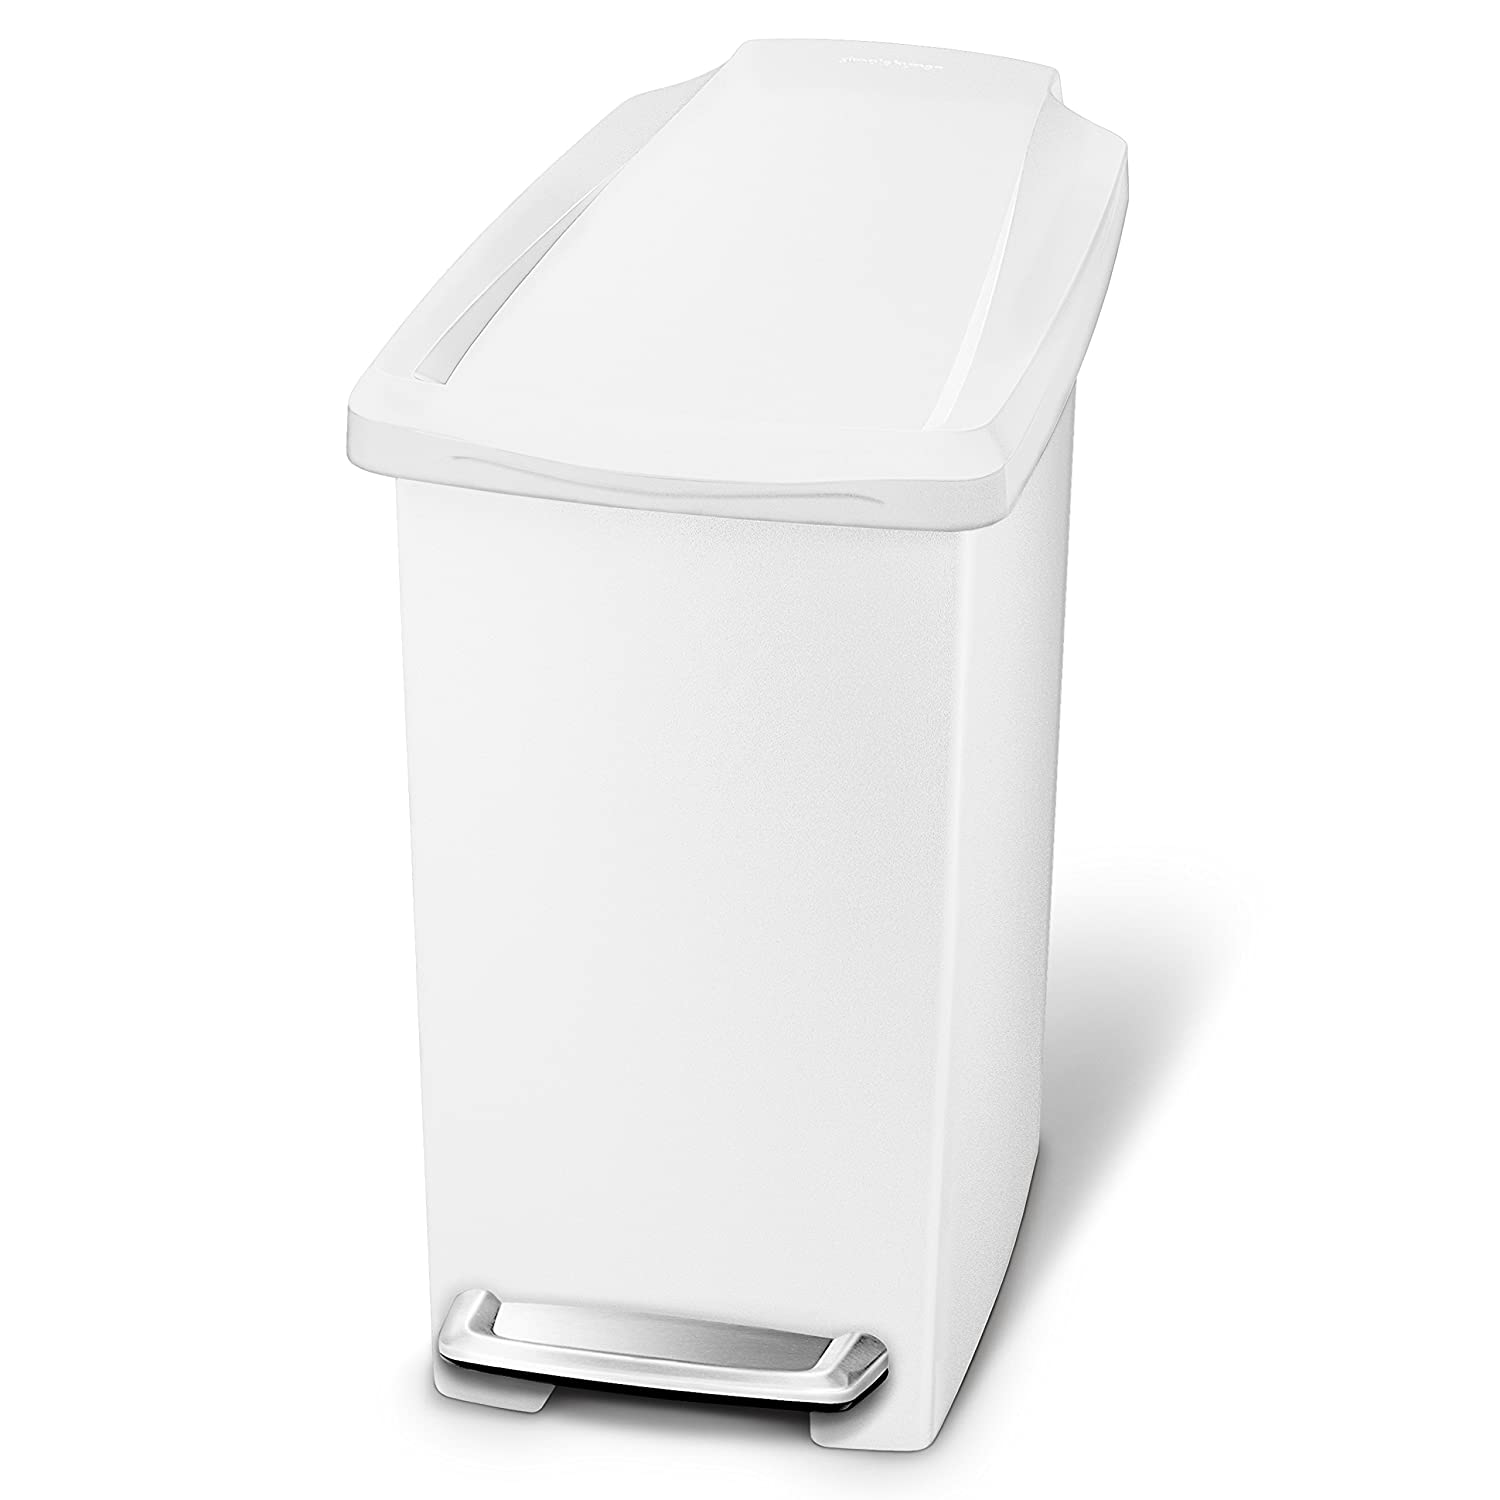 simplehuman 10 Liter / 2.6 Gallon Compact Slim Bathroom or Office Step Trash Can, White Plastic